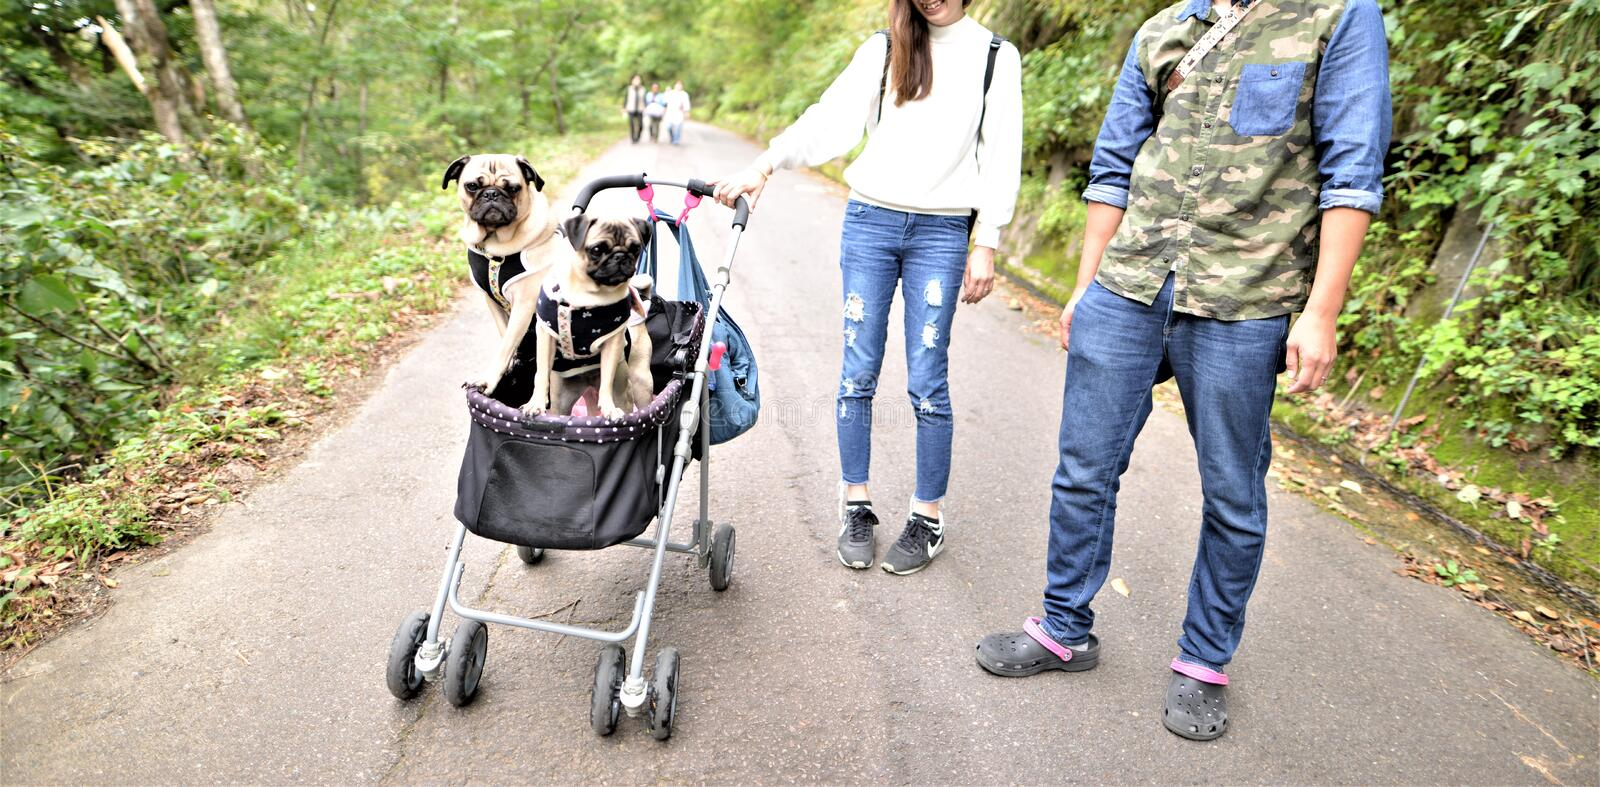 Pet dogs in baby carriage travel with owner stock photography